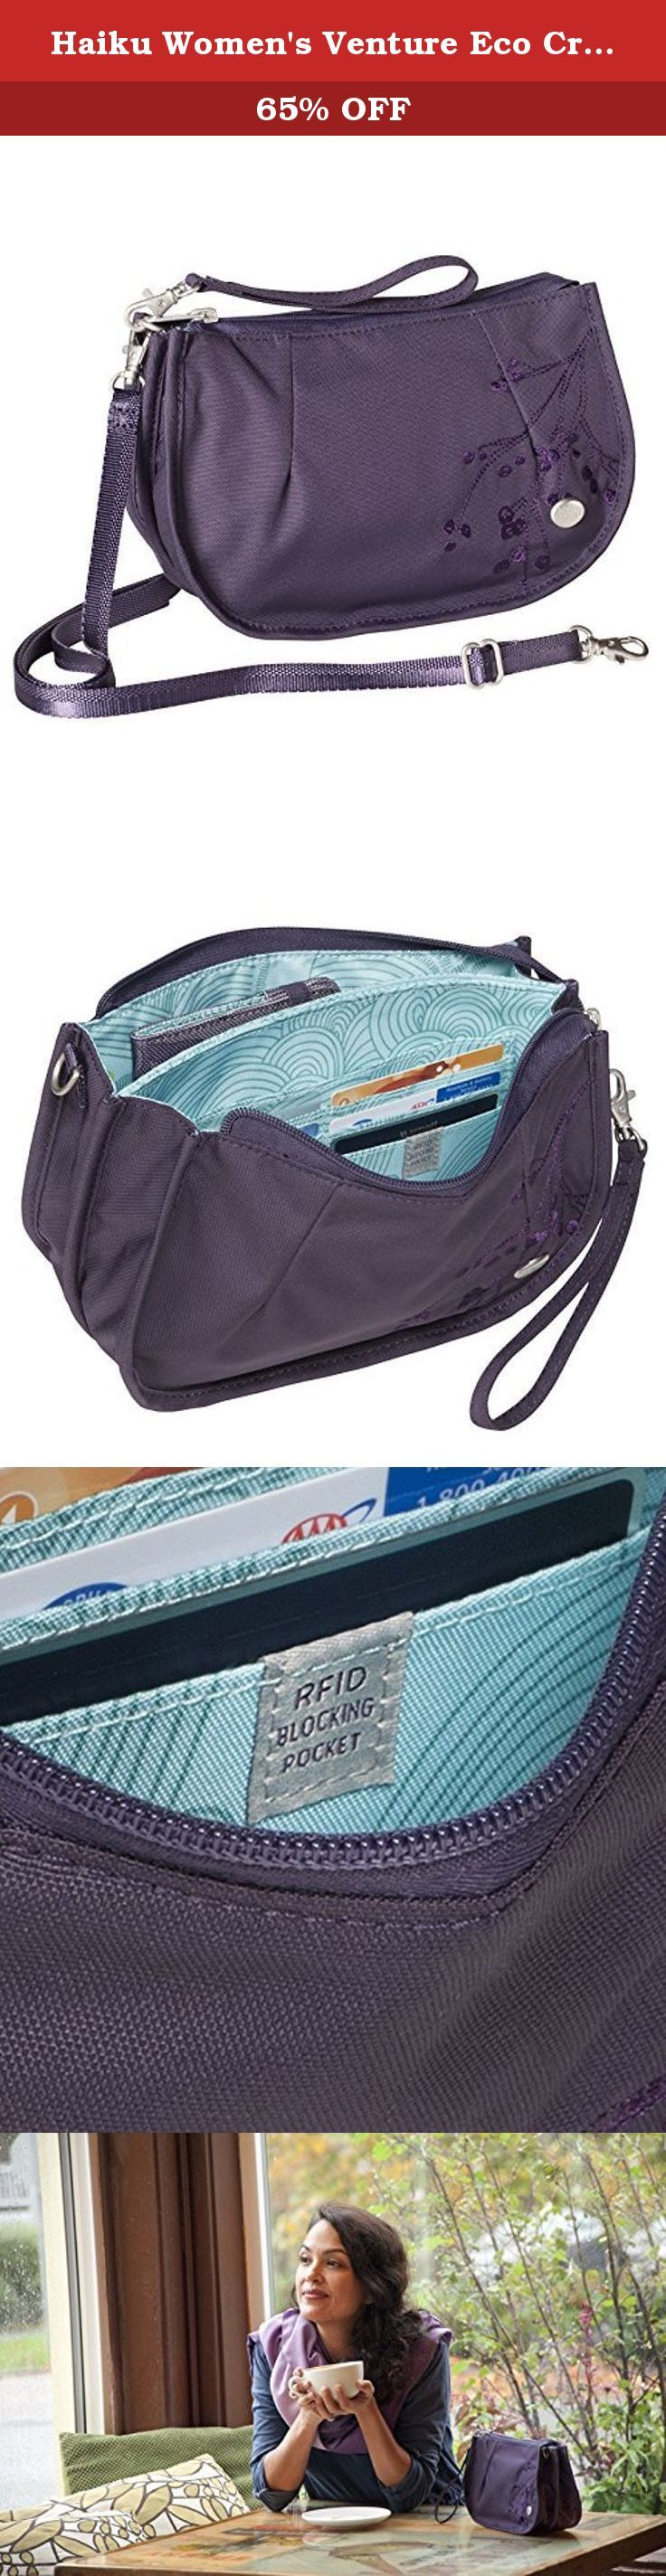 Haiku Women's Venture Eco Crossbody Bag, Amethyst. Think of it as a clutch-plus. On light outings, the venture carries your phone, cards and cash. Other times it becomes the perfect small purse, with folio-style dividers for your sunglasses, wrist warmers, and even a small notebook. Structural piping allows it to sit upright while claiming minimal table space at the cafe. An RFID-blocking card pocket and a security-locking zipper make it ideal for travel as well.